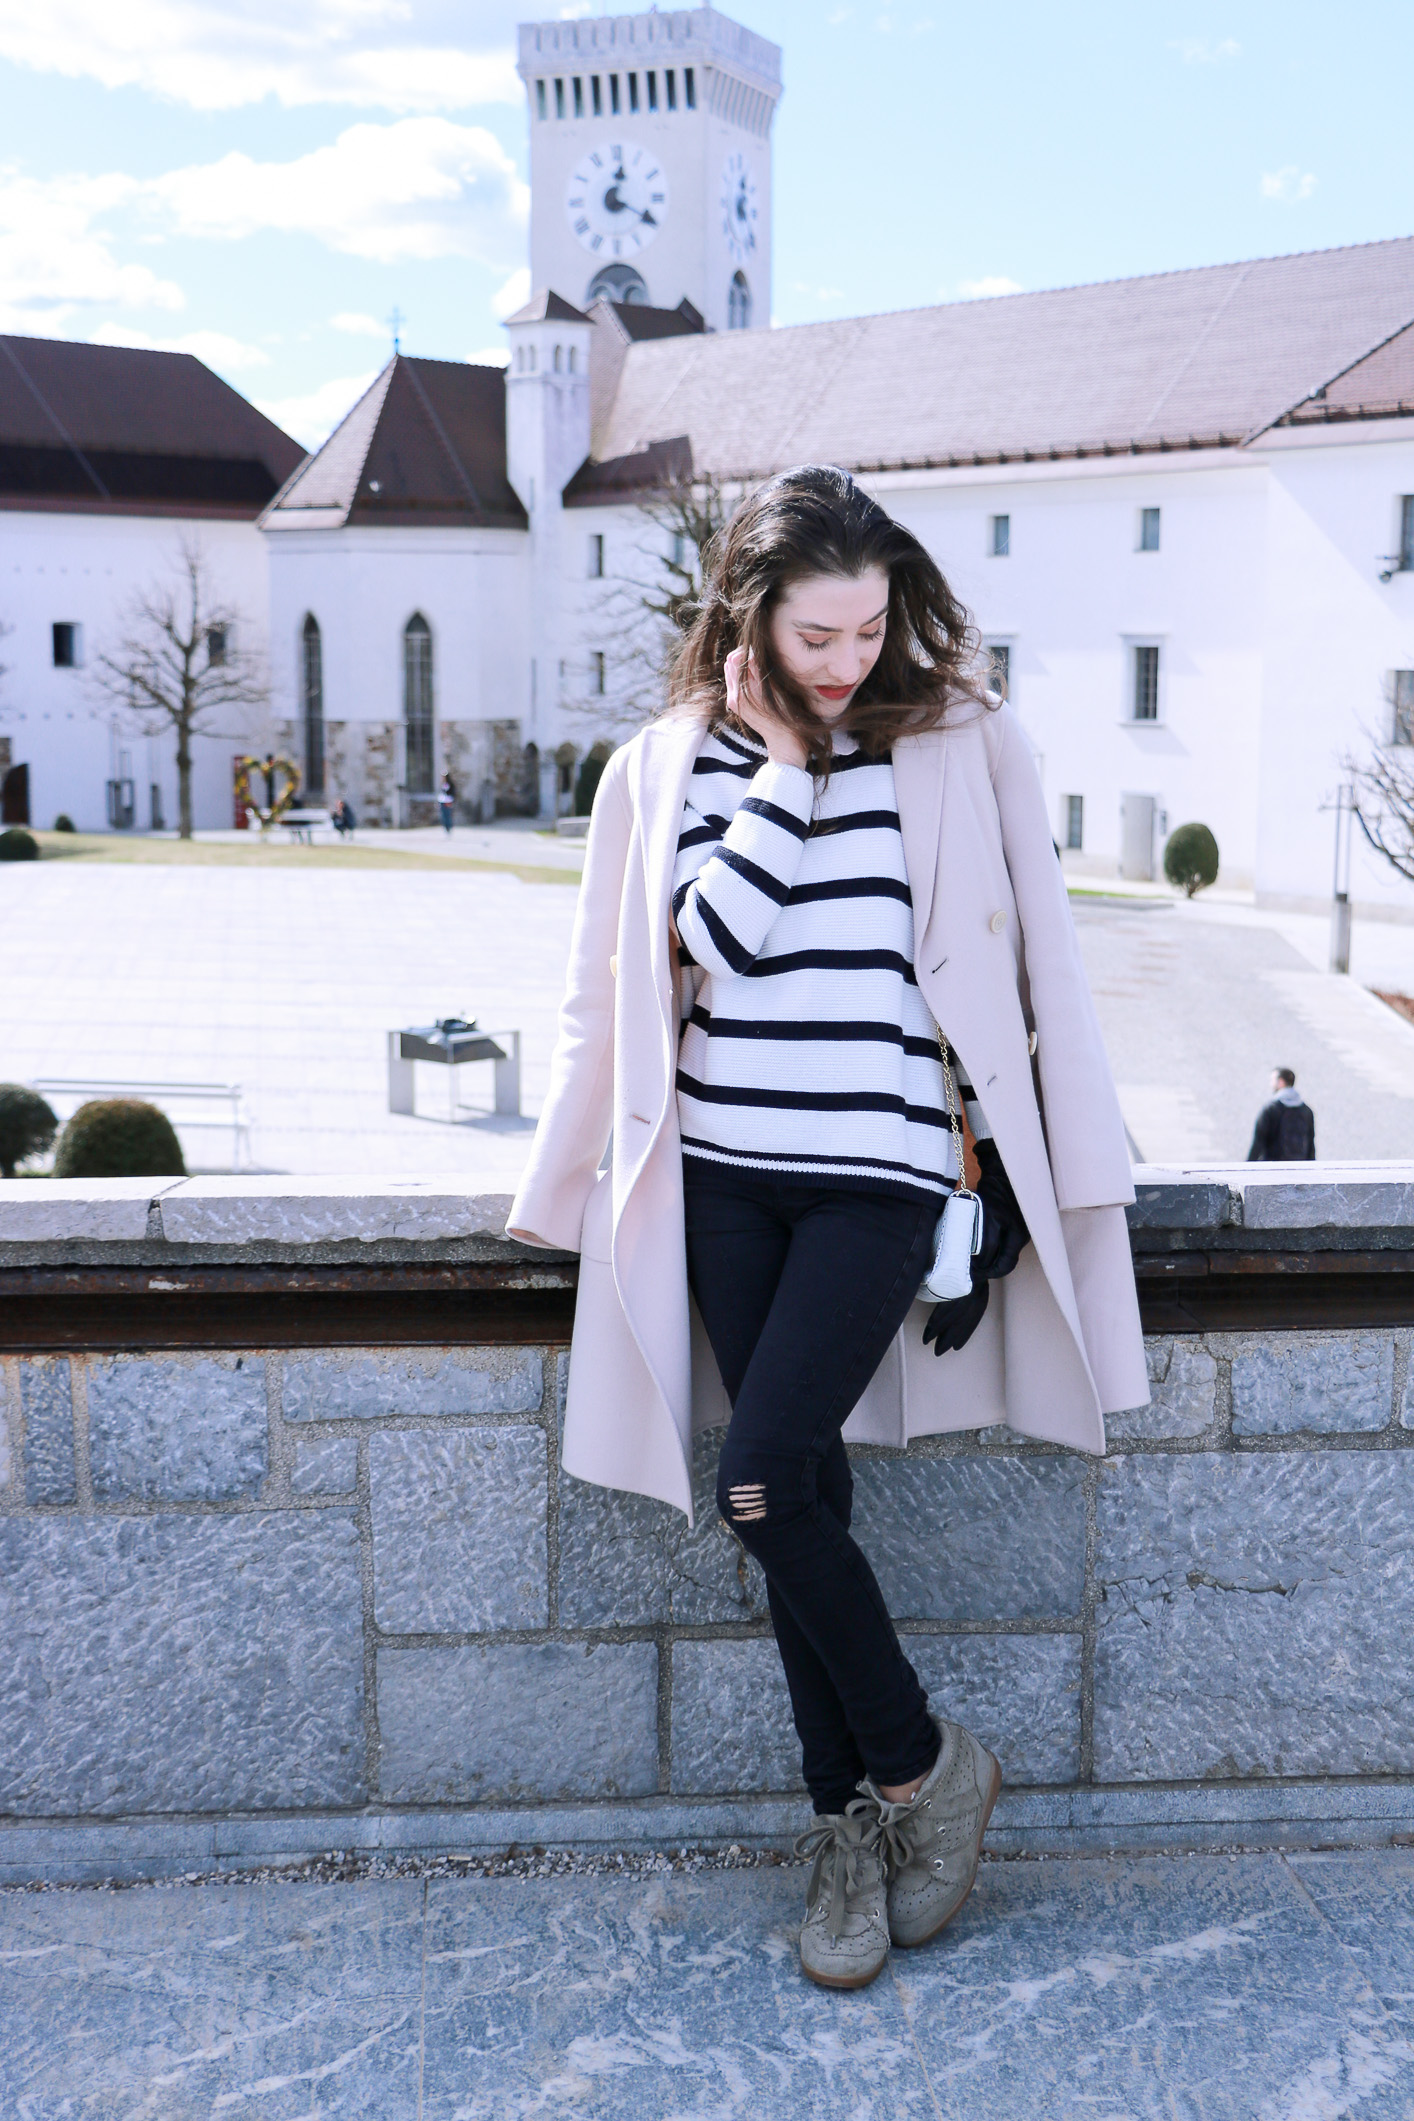 Fashion blogger Veronika Lipar of Brunette From Wall Street on what to wear on City Break this Spring